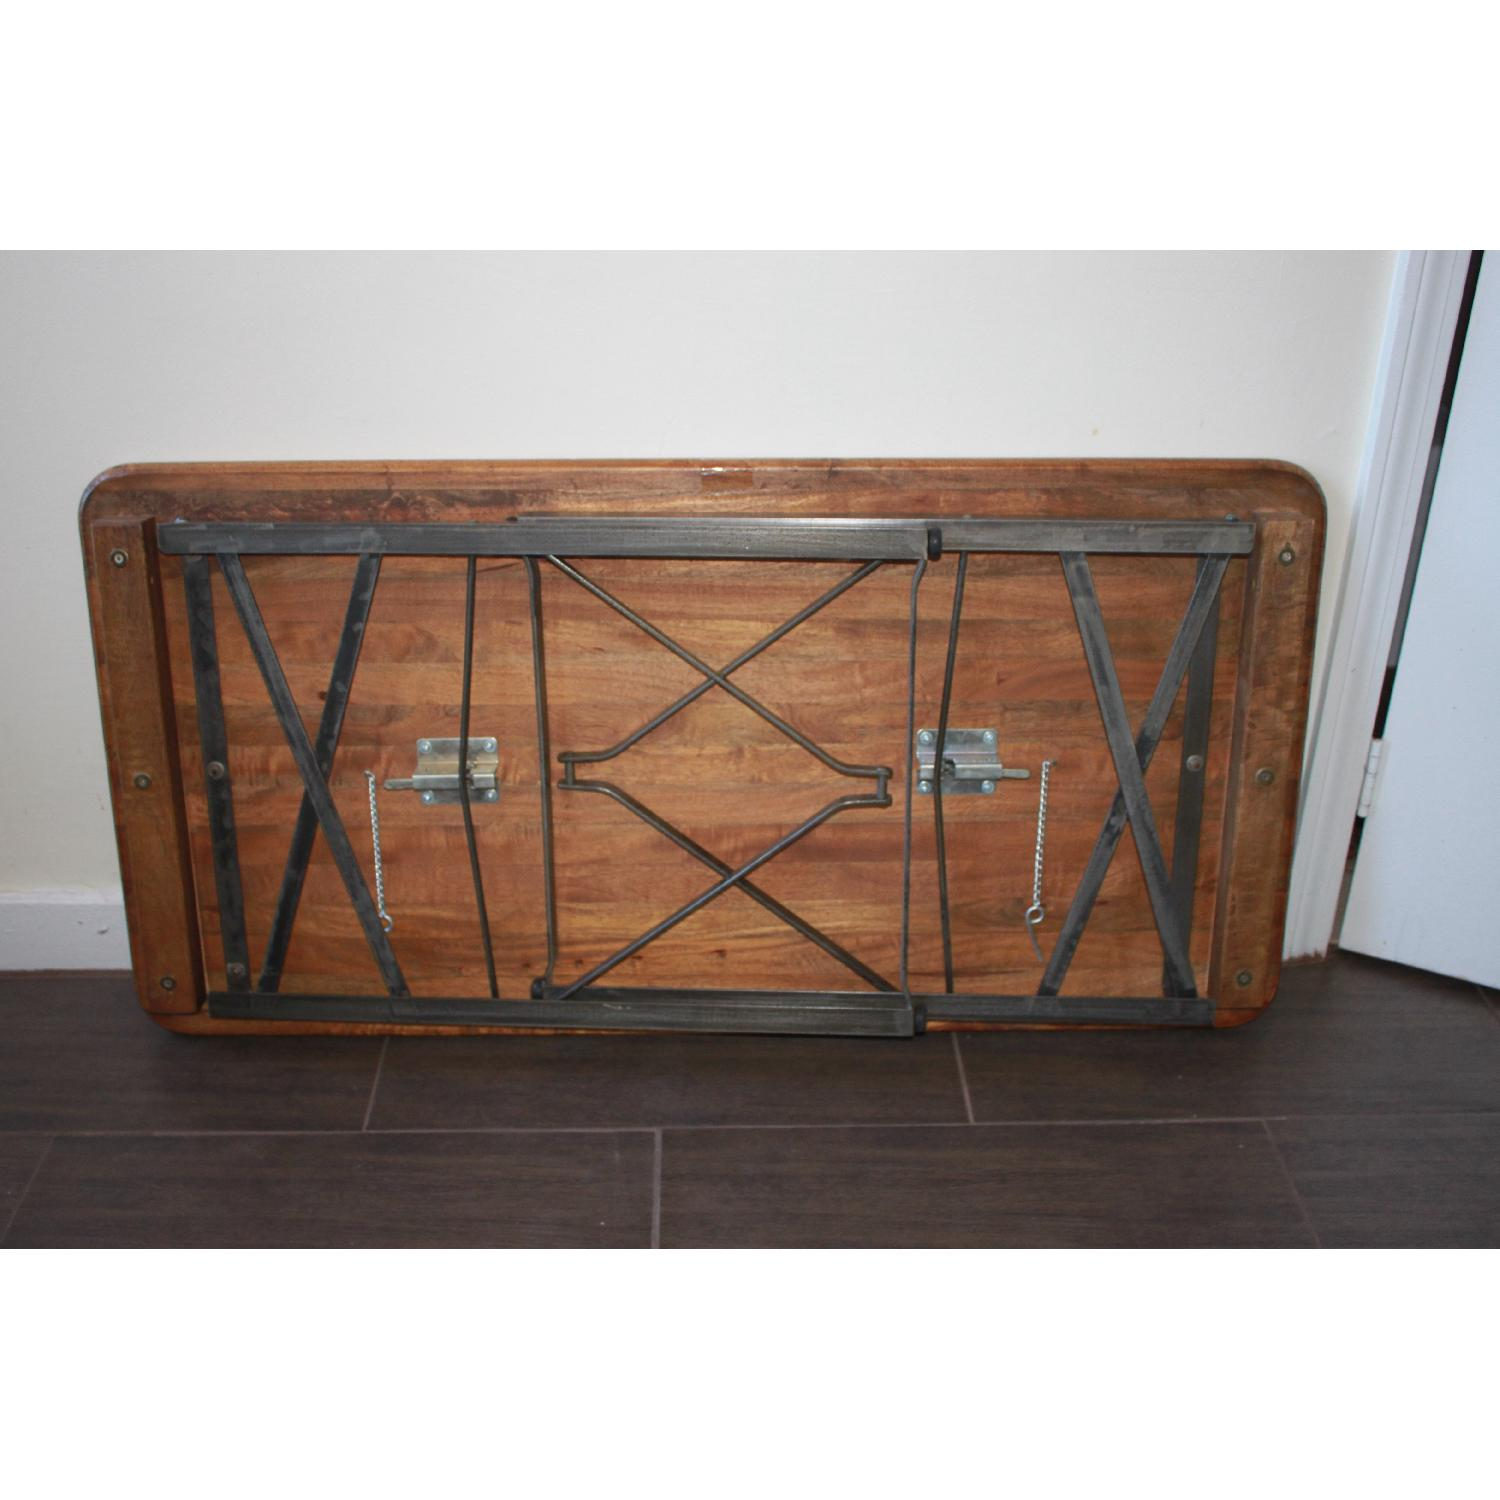 Reclaimed Wood Folding Table/Kitchen Table